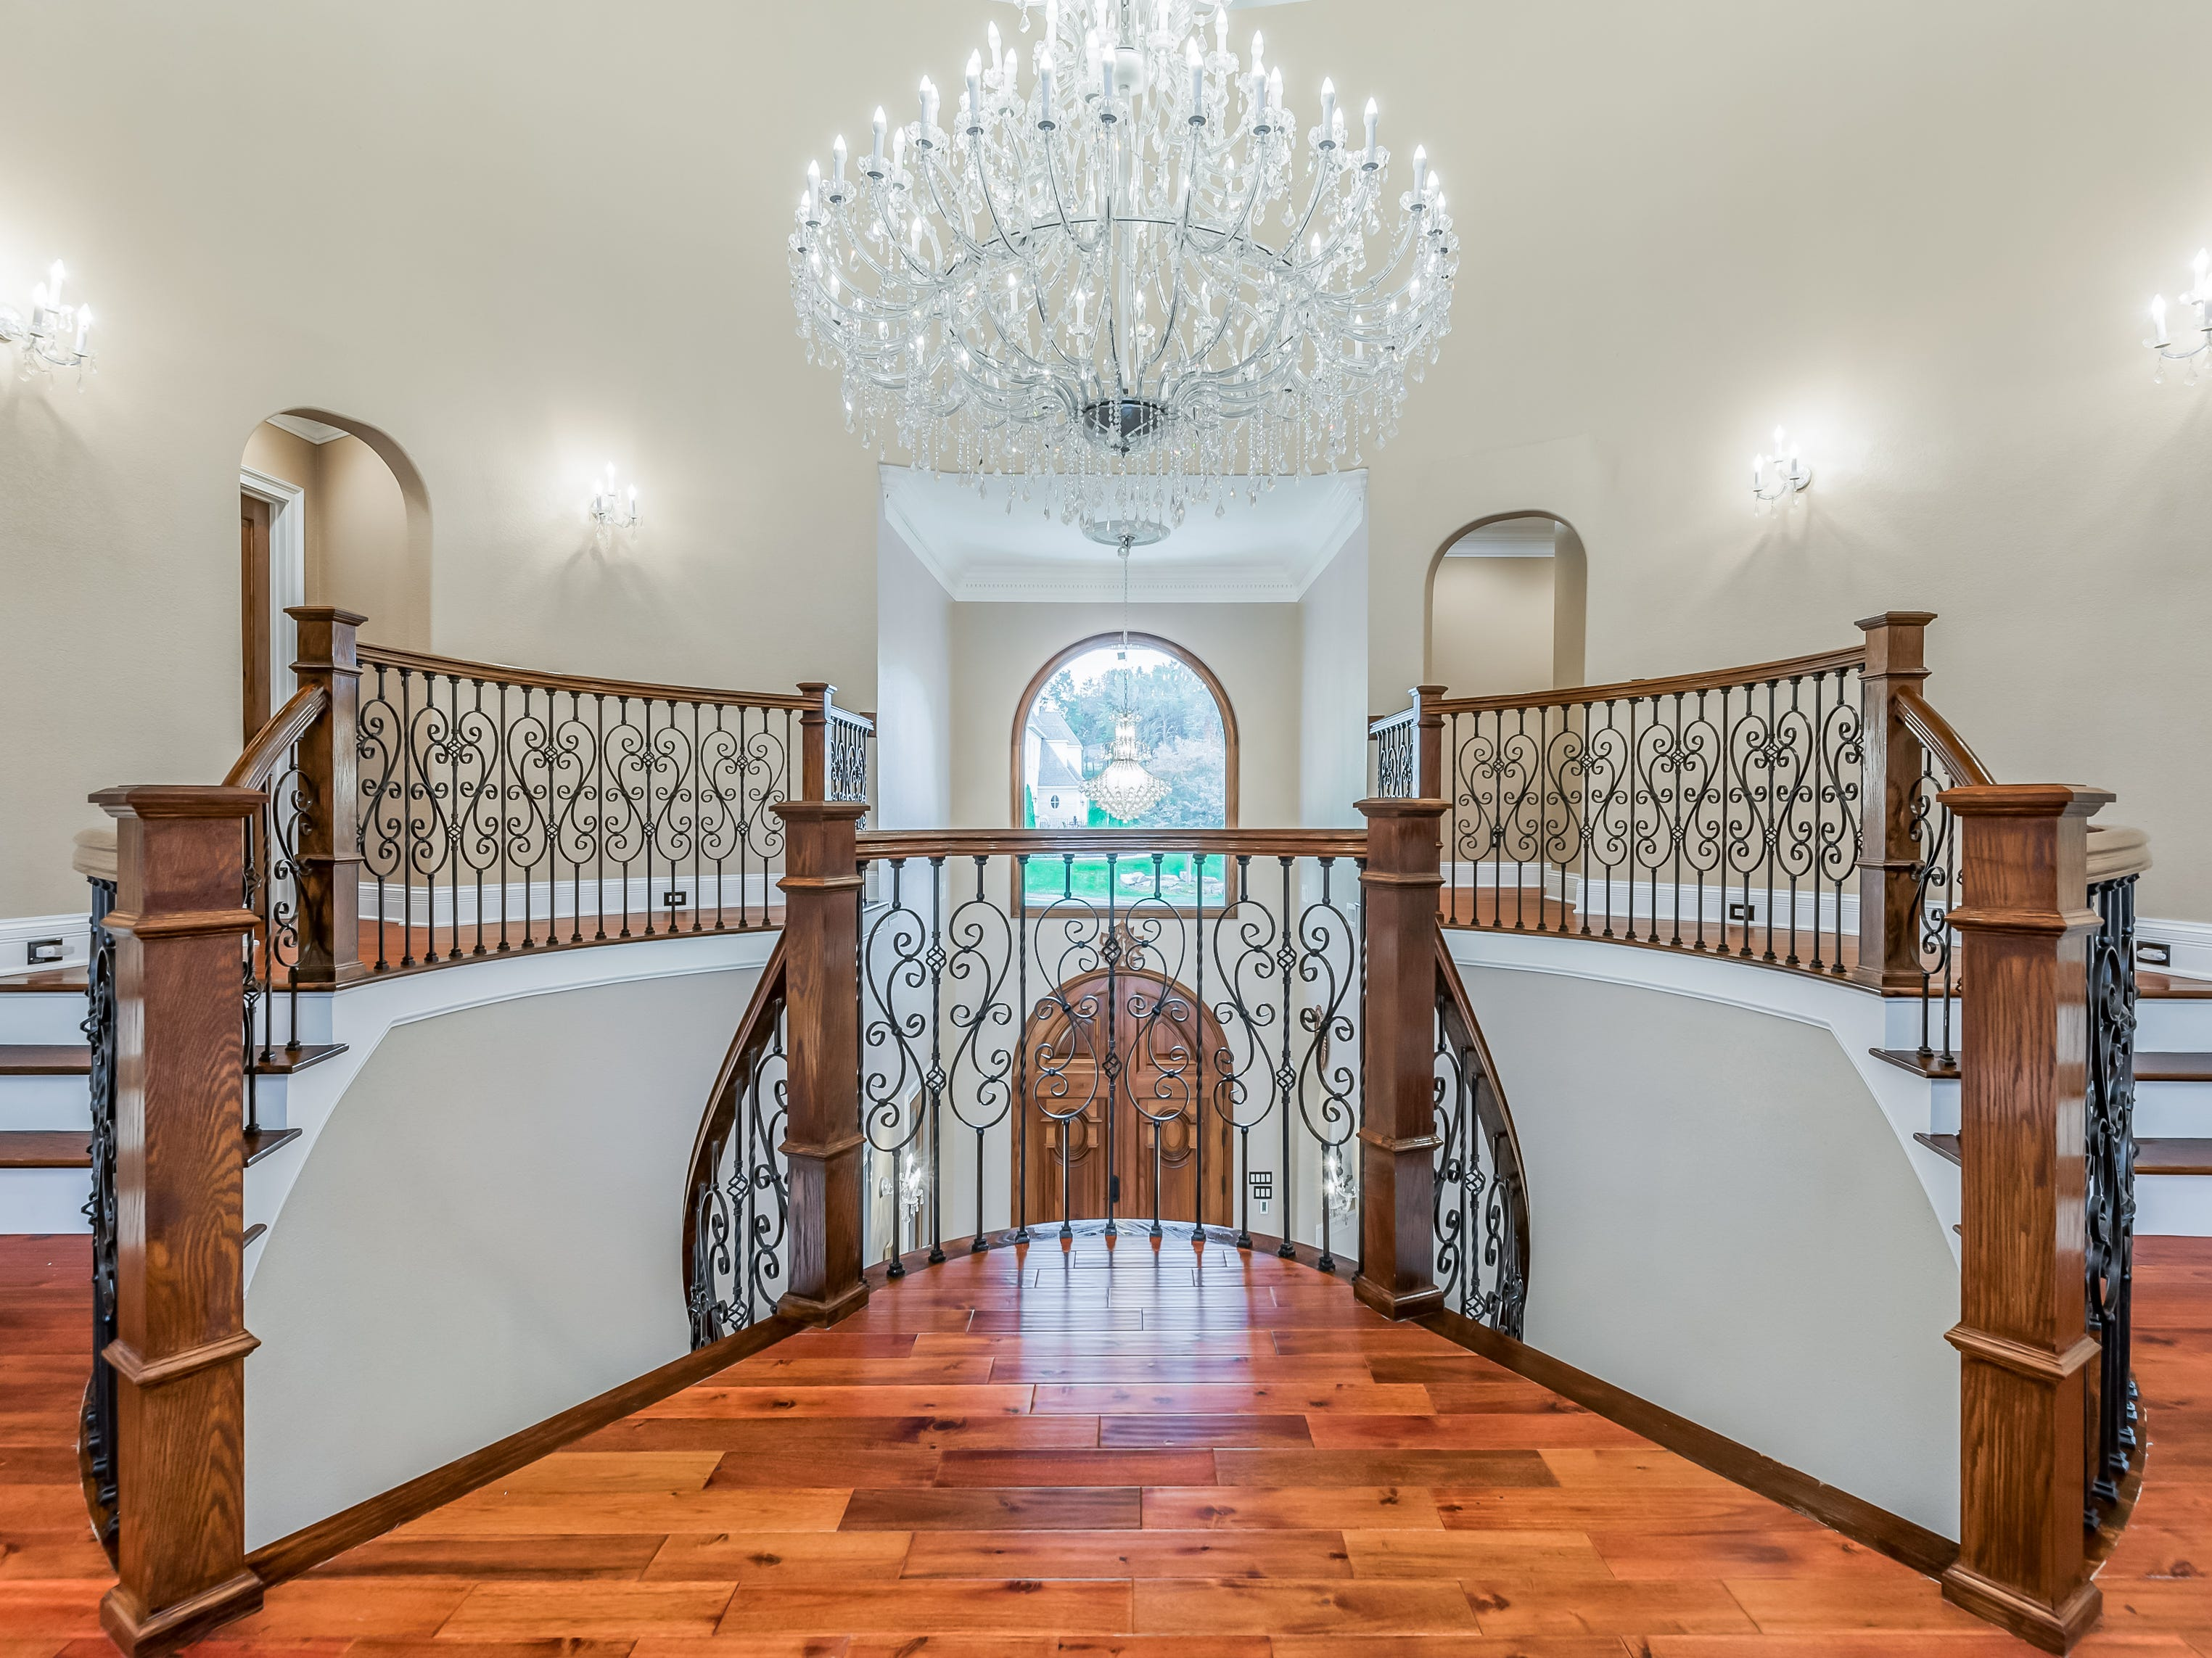 1439 Charlottesville Blvd in Farragut is listed for $1,995,000.